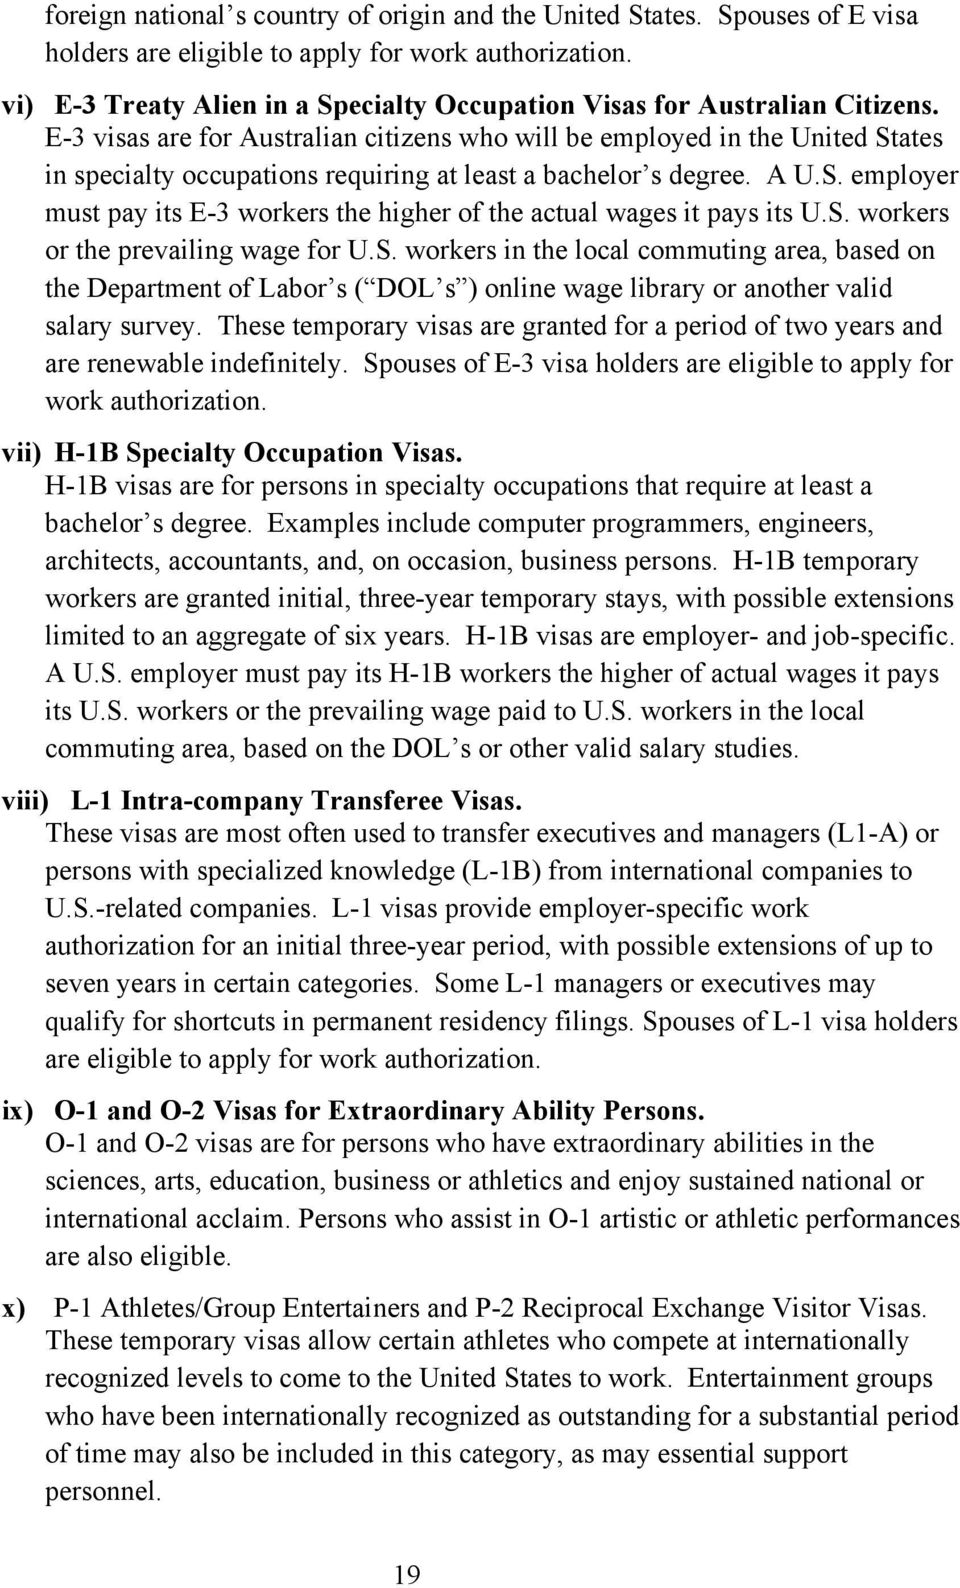 E-3 visas are for Australian citizens who will be employed in the United States in specialty occupations requiring at least a bachelor s degree. A U.S. employer must pay its E-3 workers the higher of the actual wages it pays its U.